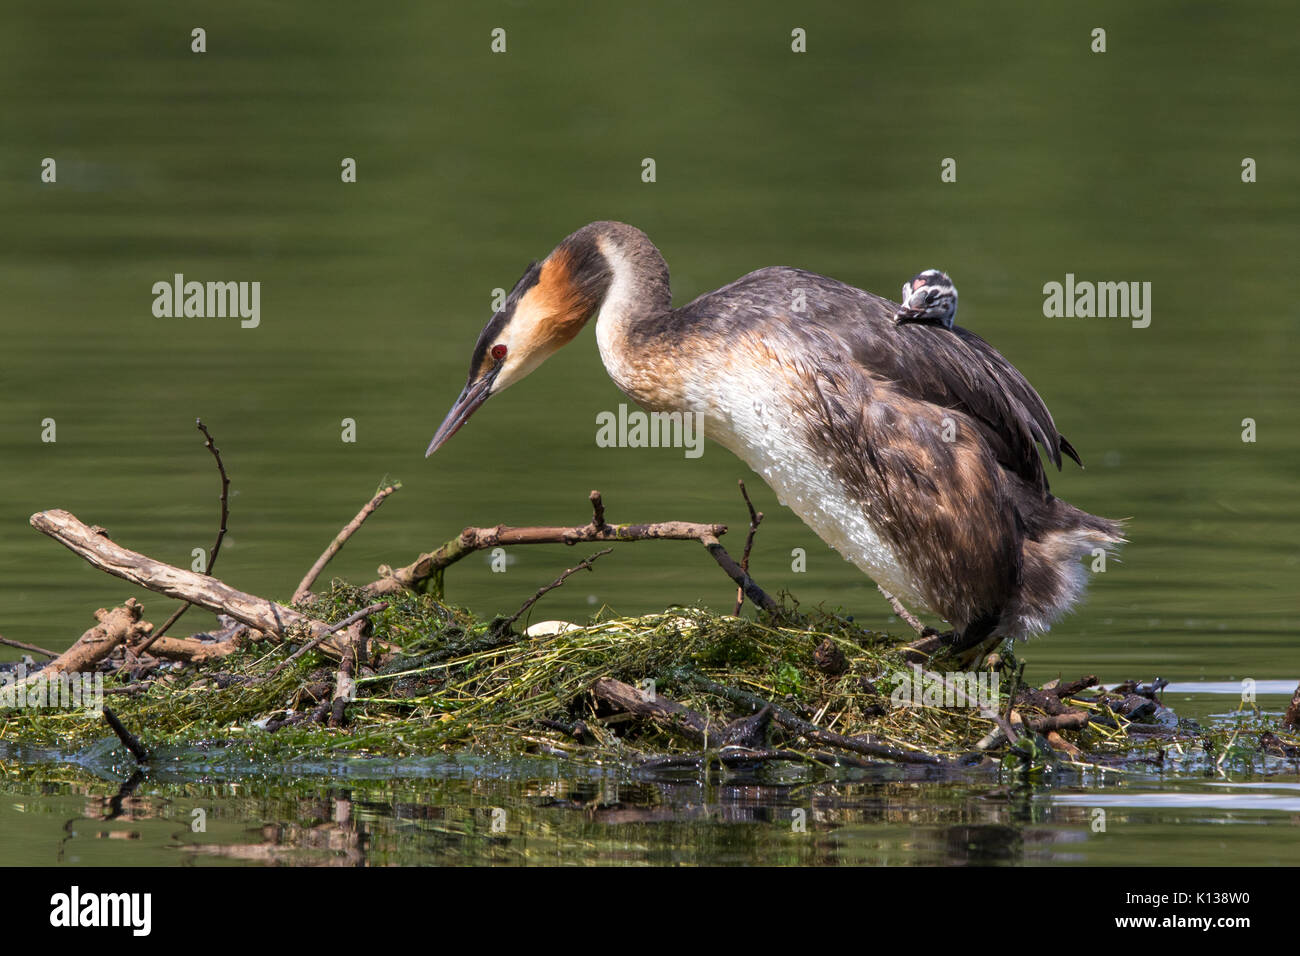 female Great Crested Grebe (Podiceps cristatus) standing on her nest with a young chick on her back - Stock Image